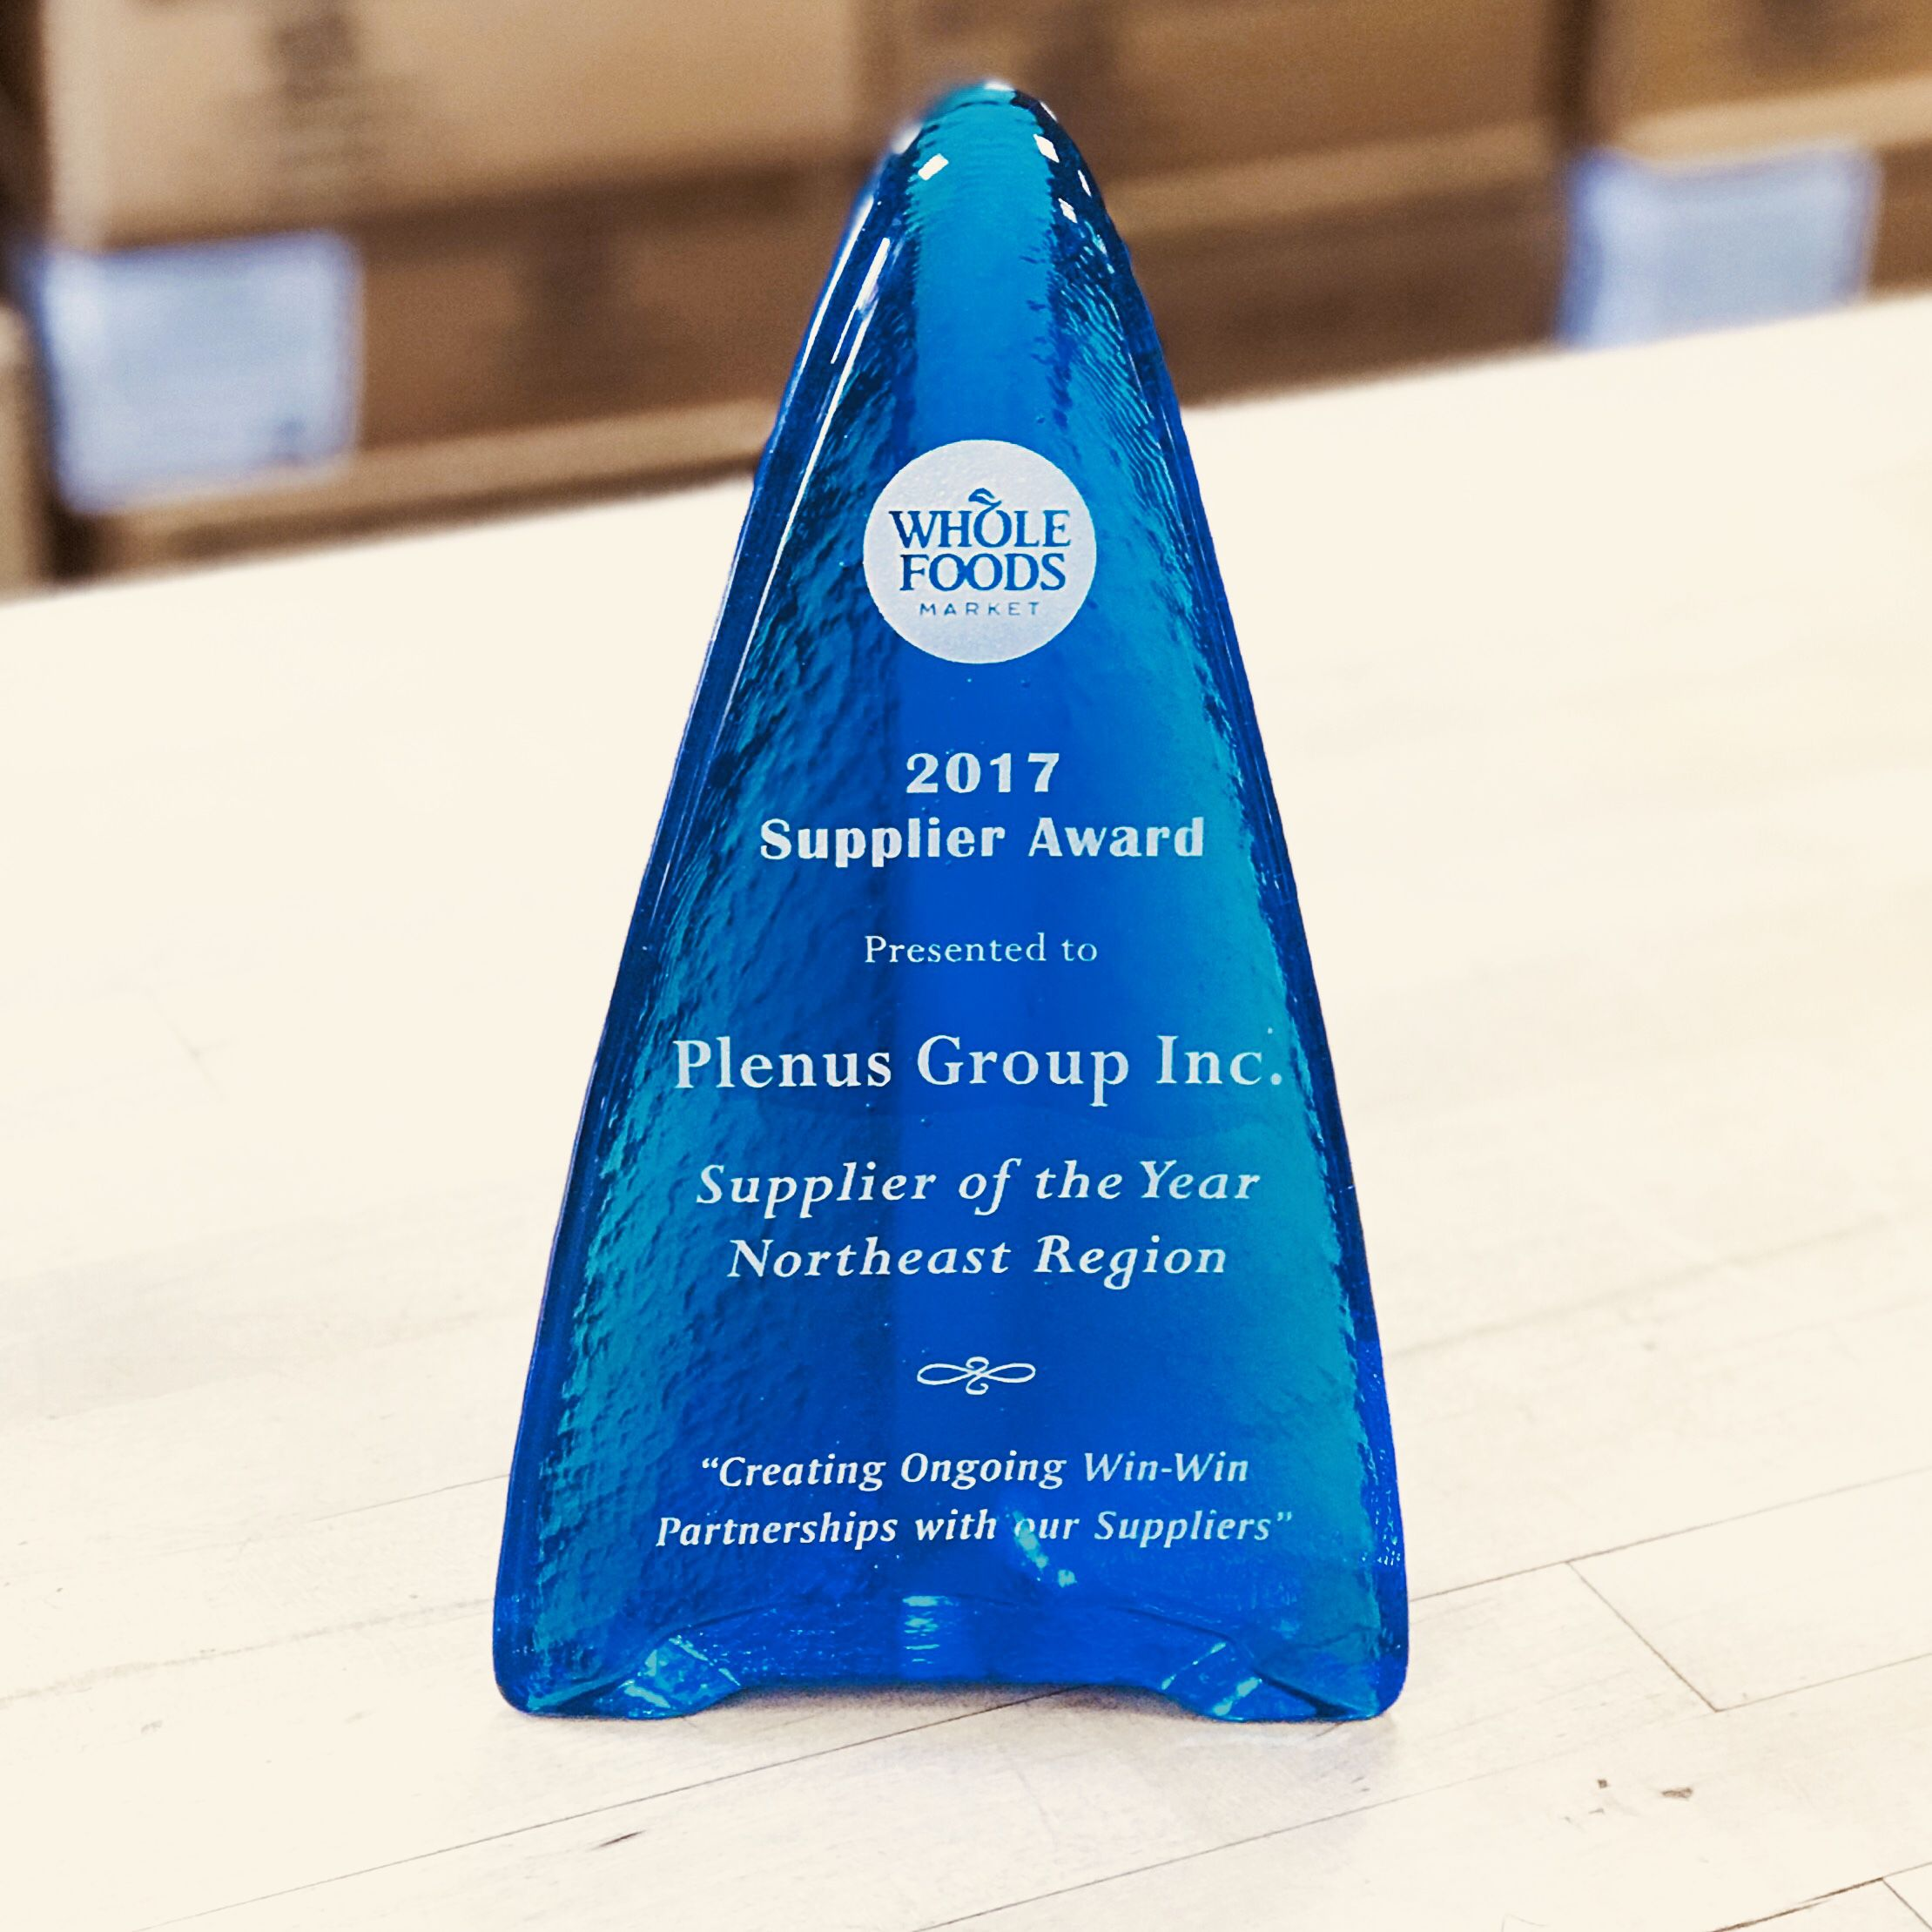 Plenus Group a Supplier of the Year for Whole Foods - Plenus